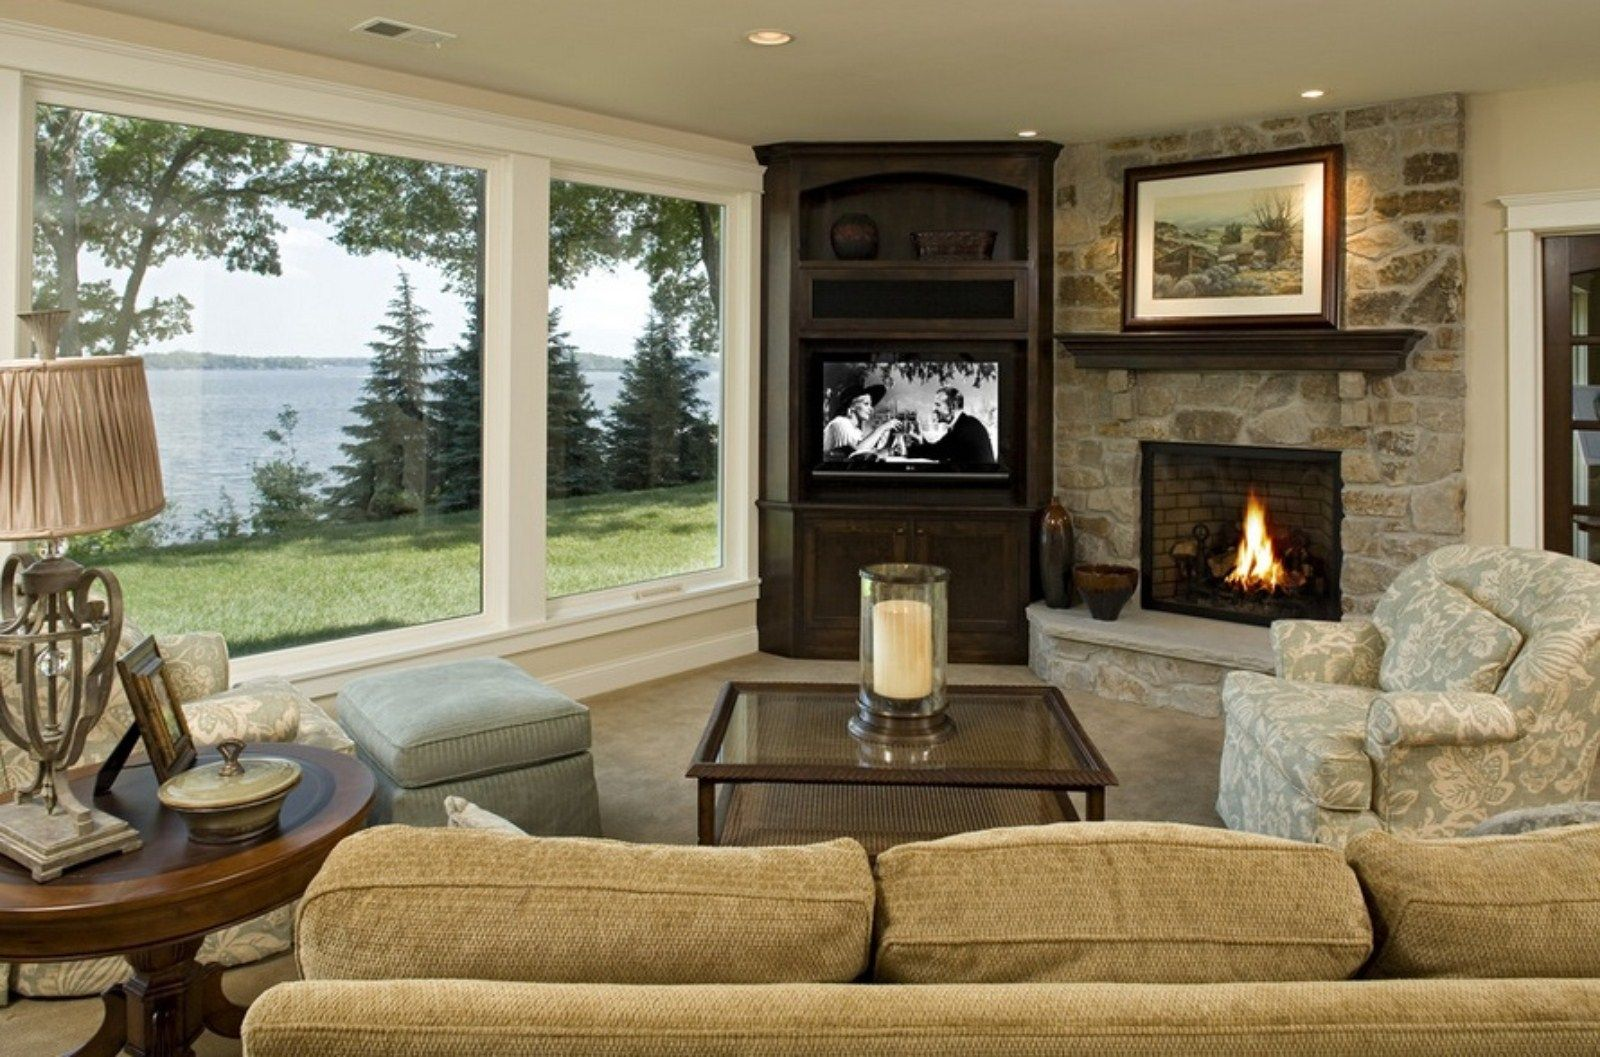 New fireplace with tv eclectic family room minneapolis - Furniture Corner Tv Wall Mount With Shelf And Recessed Lighting For Traditional Family Room Design